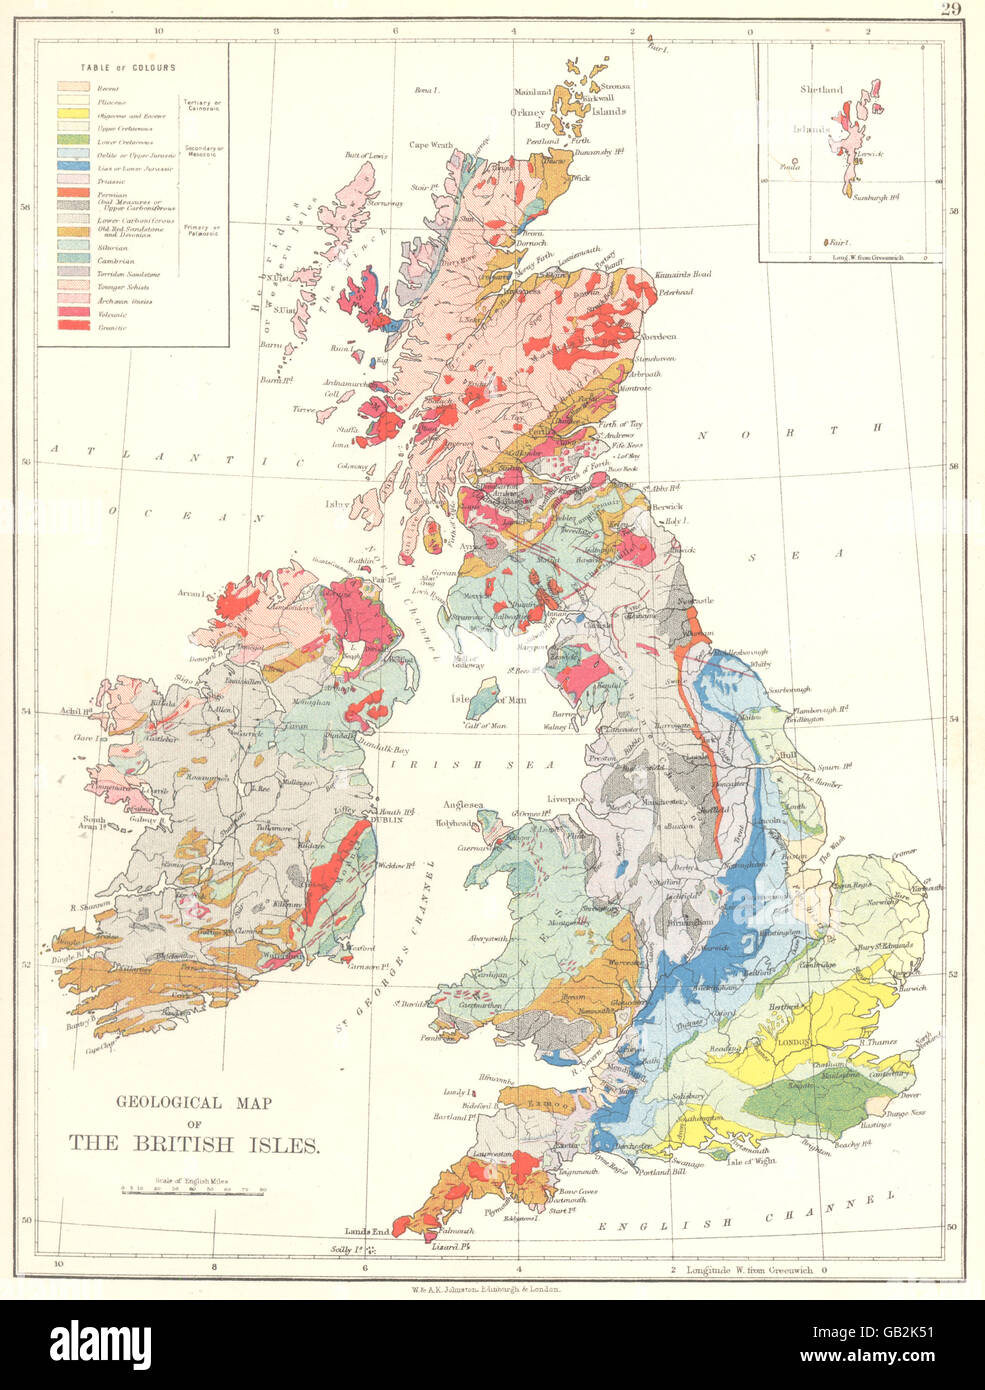 Picture of: United Kingdom Geographical Map Of The British Isles 1897 Stock Photo Alamy